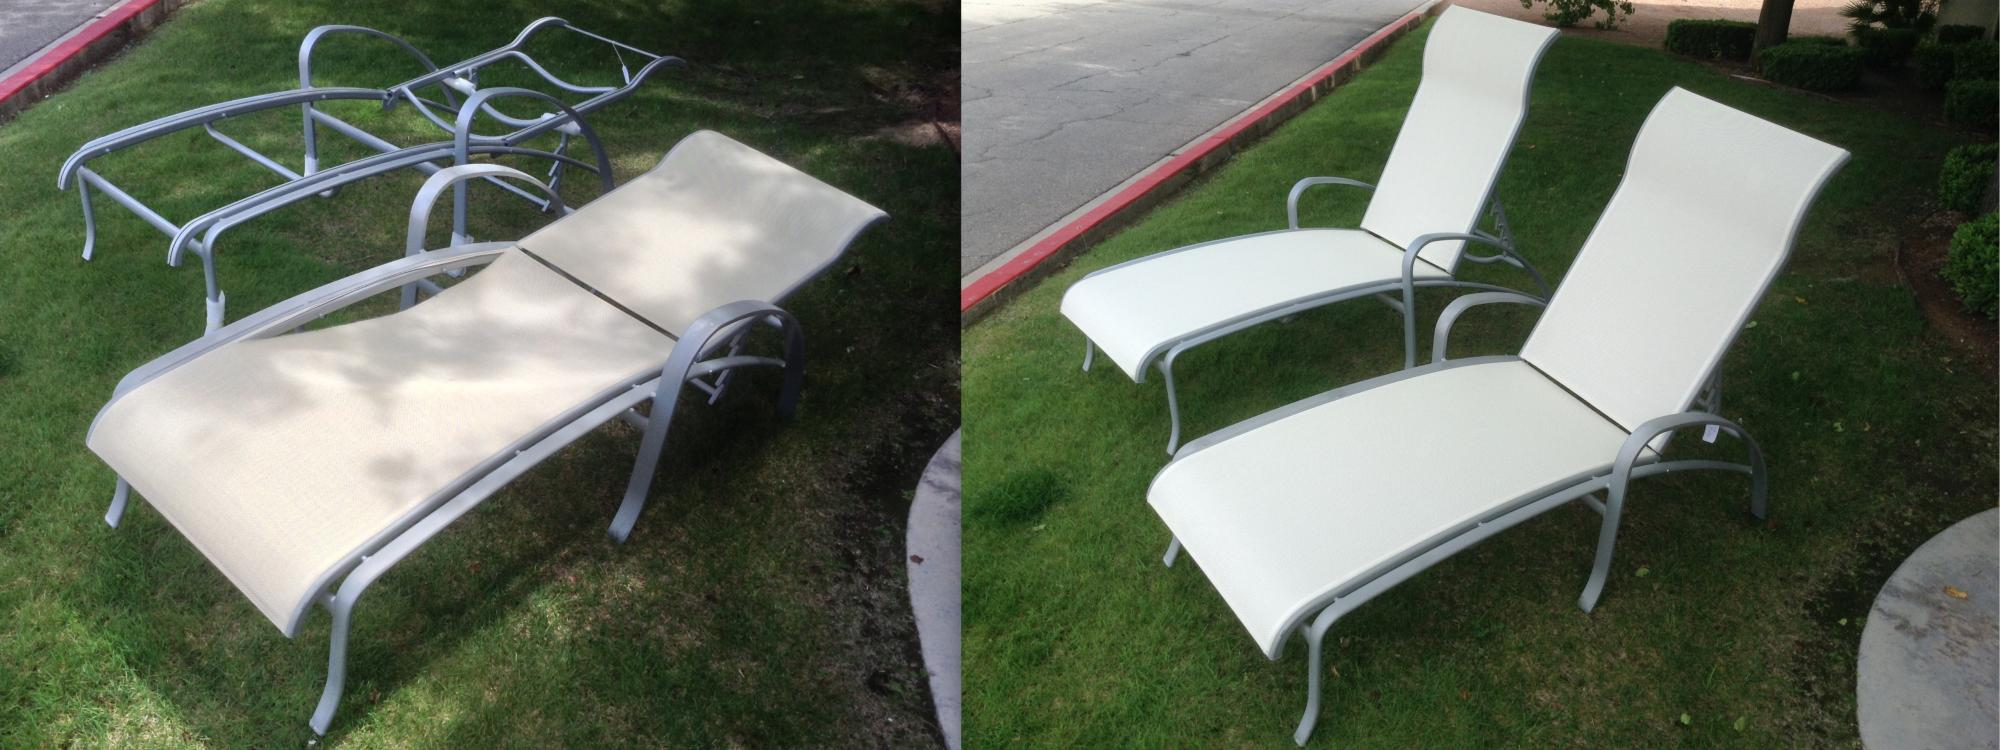 Tropitone Spinnaker Chaise Sling Installation ~ Before & After